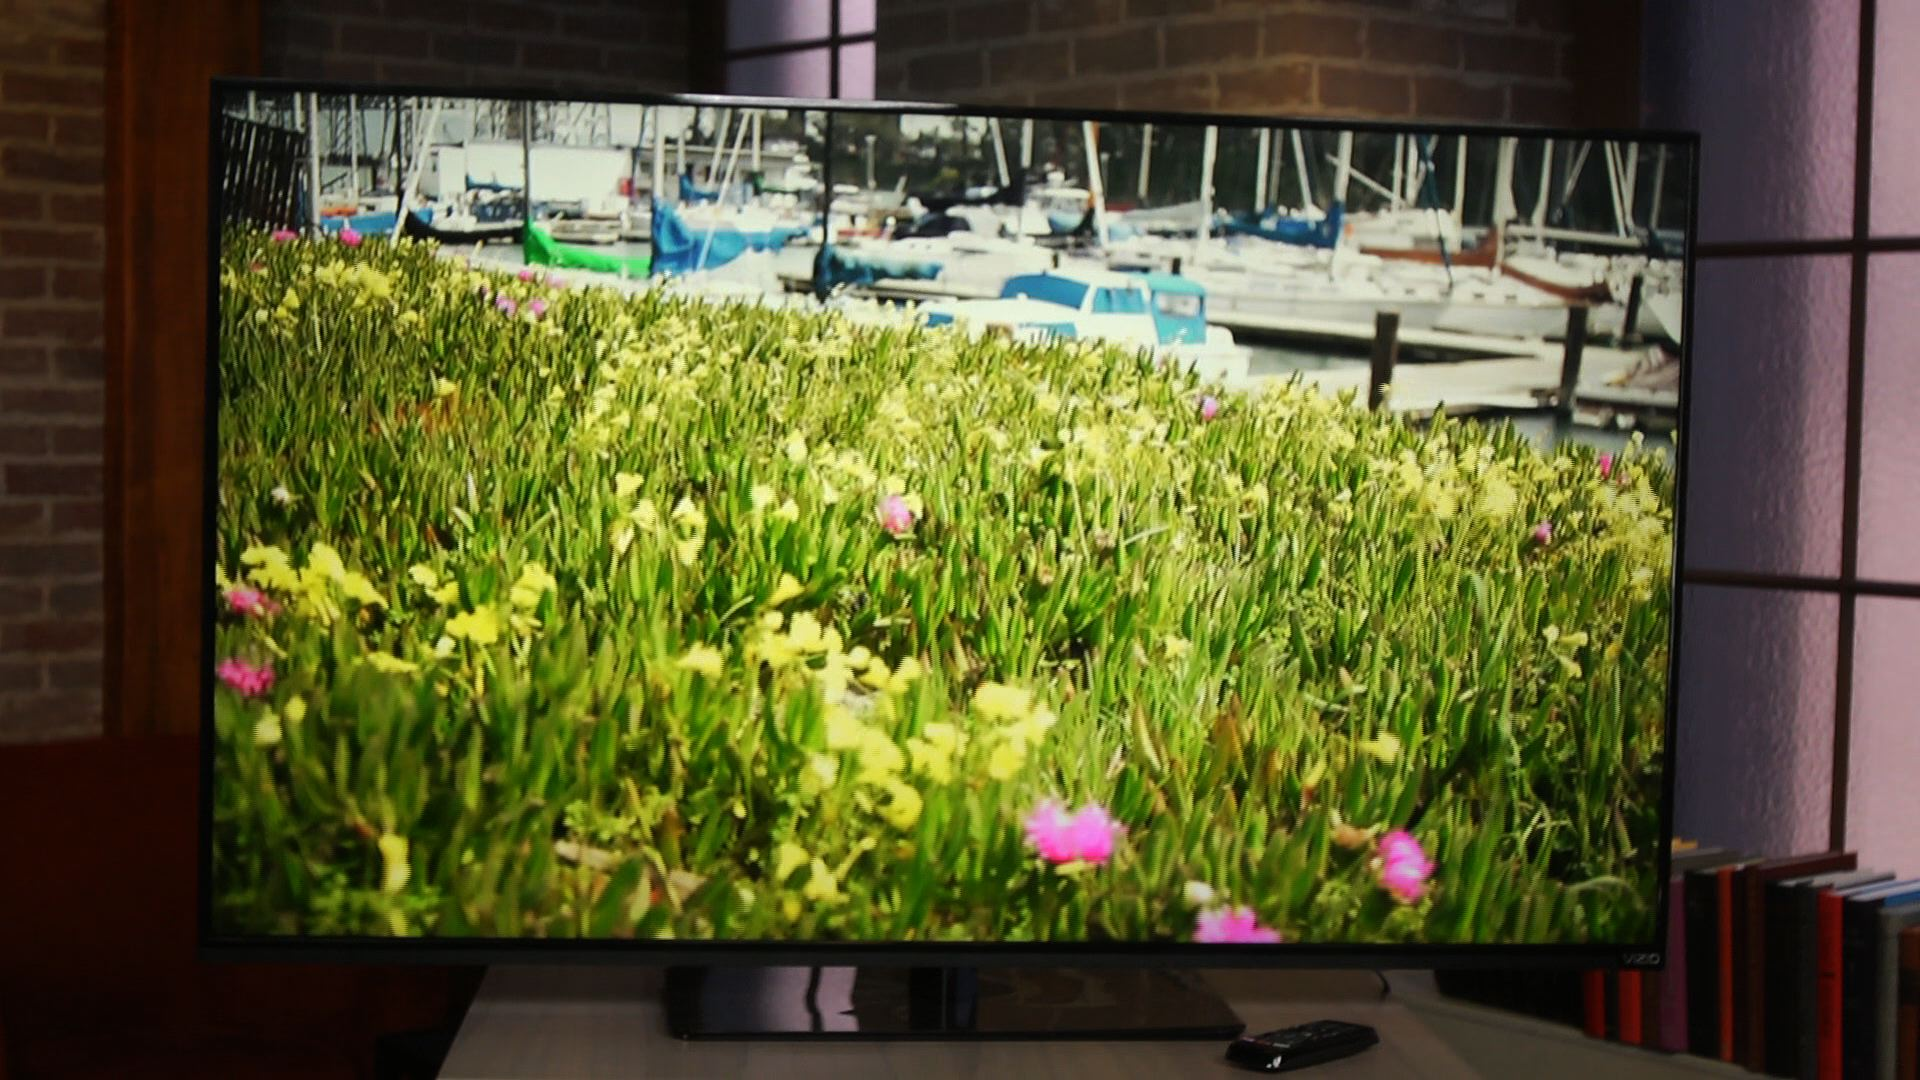 Video: Vizio's E series review: Unbeatable picture quality for the money